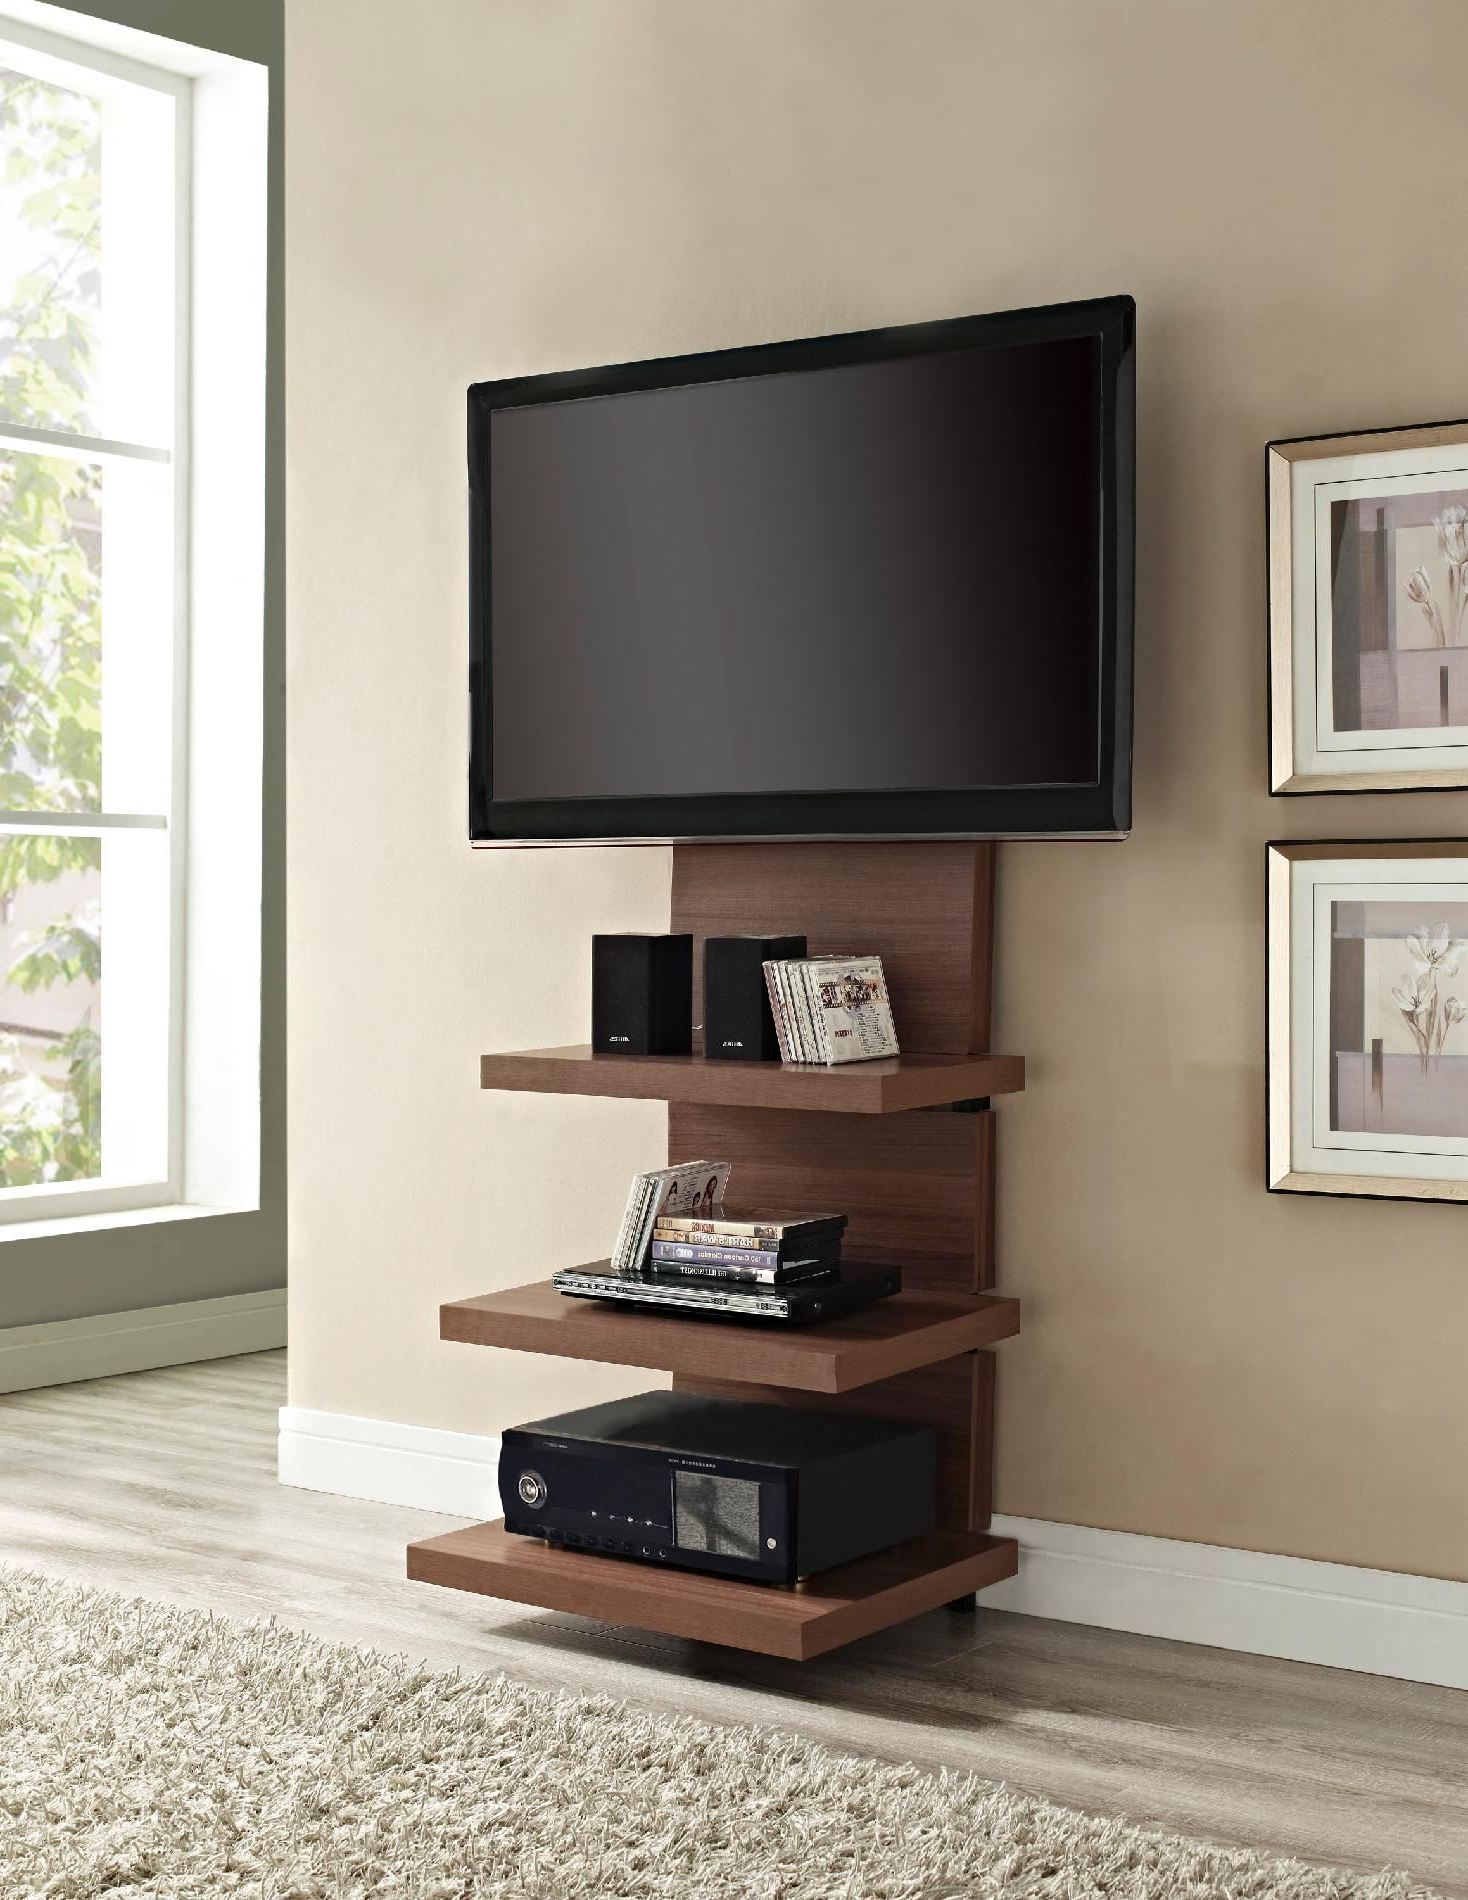 18 Chic And Modern Tv Wall Mount Ideas For Living Room | Dream Home Throughout Century Sky 60 Inch Tv Stands (View 3 of 20)